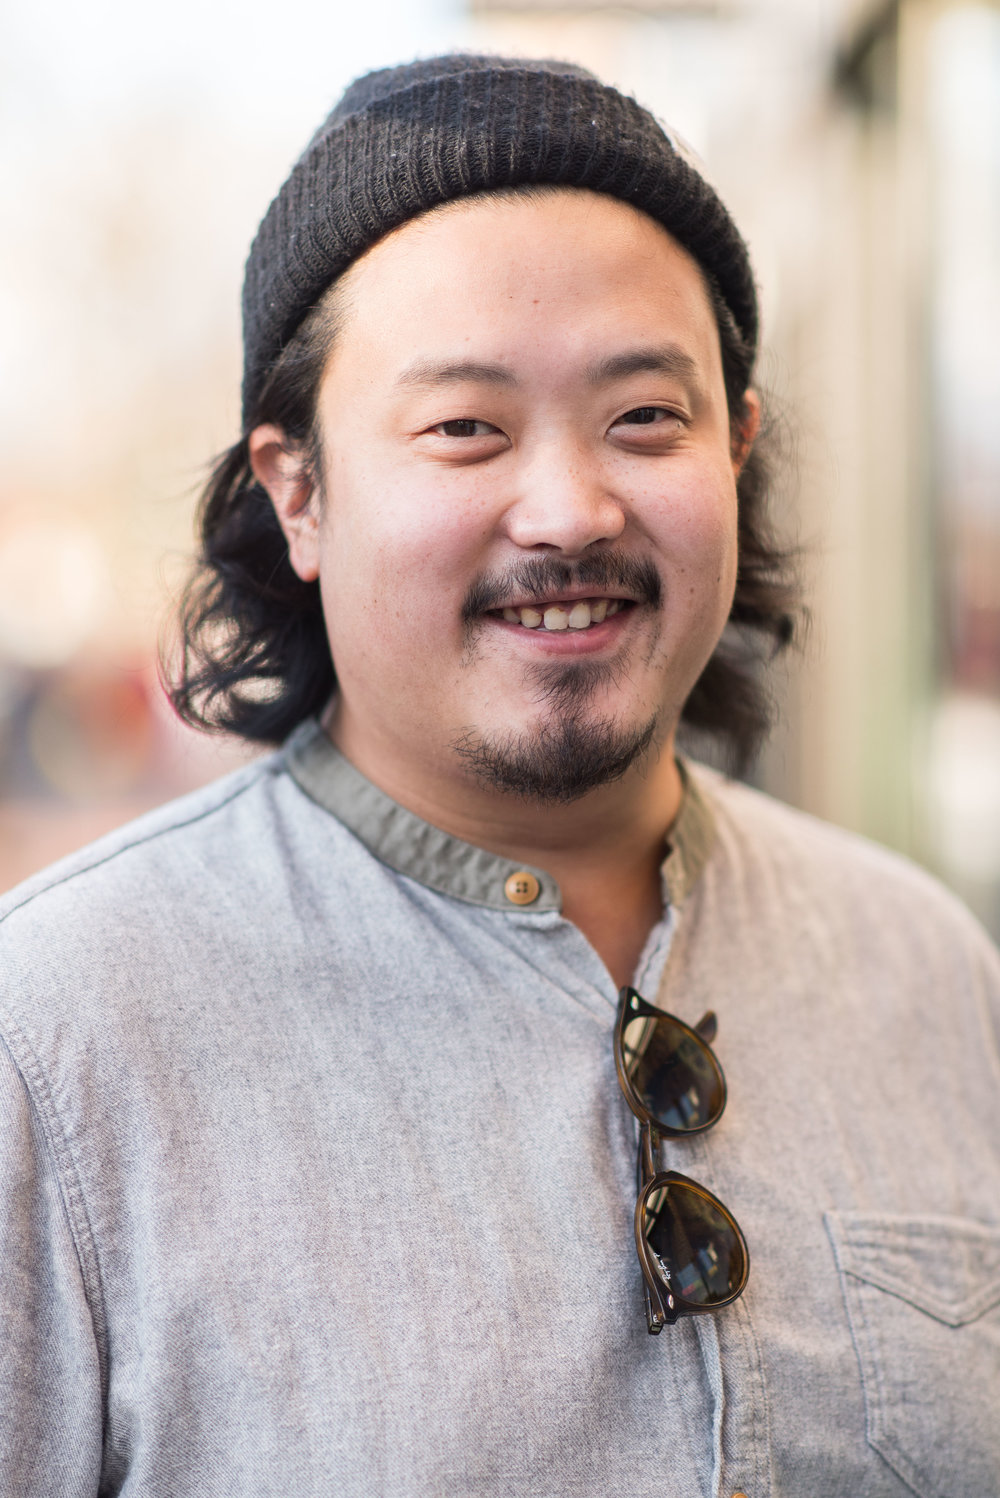 Andrew Chu, operations: Andrew grew up in Connecticut, managed a snowboard shop for eight years, and received a BA and MBA at Southern Connecticut State University